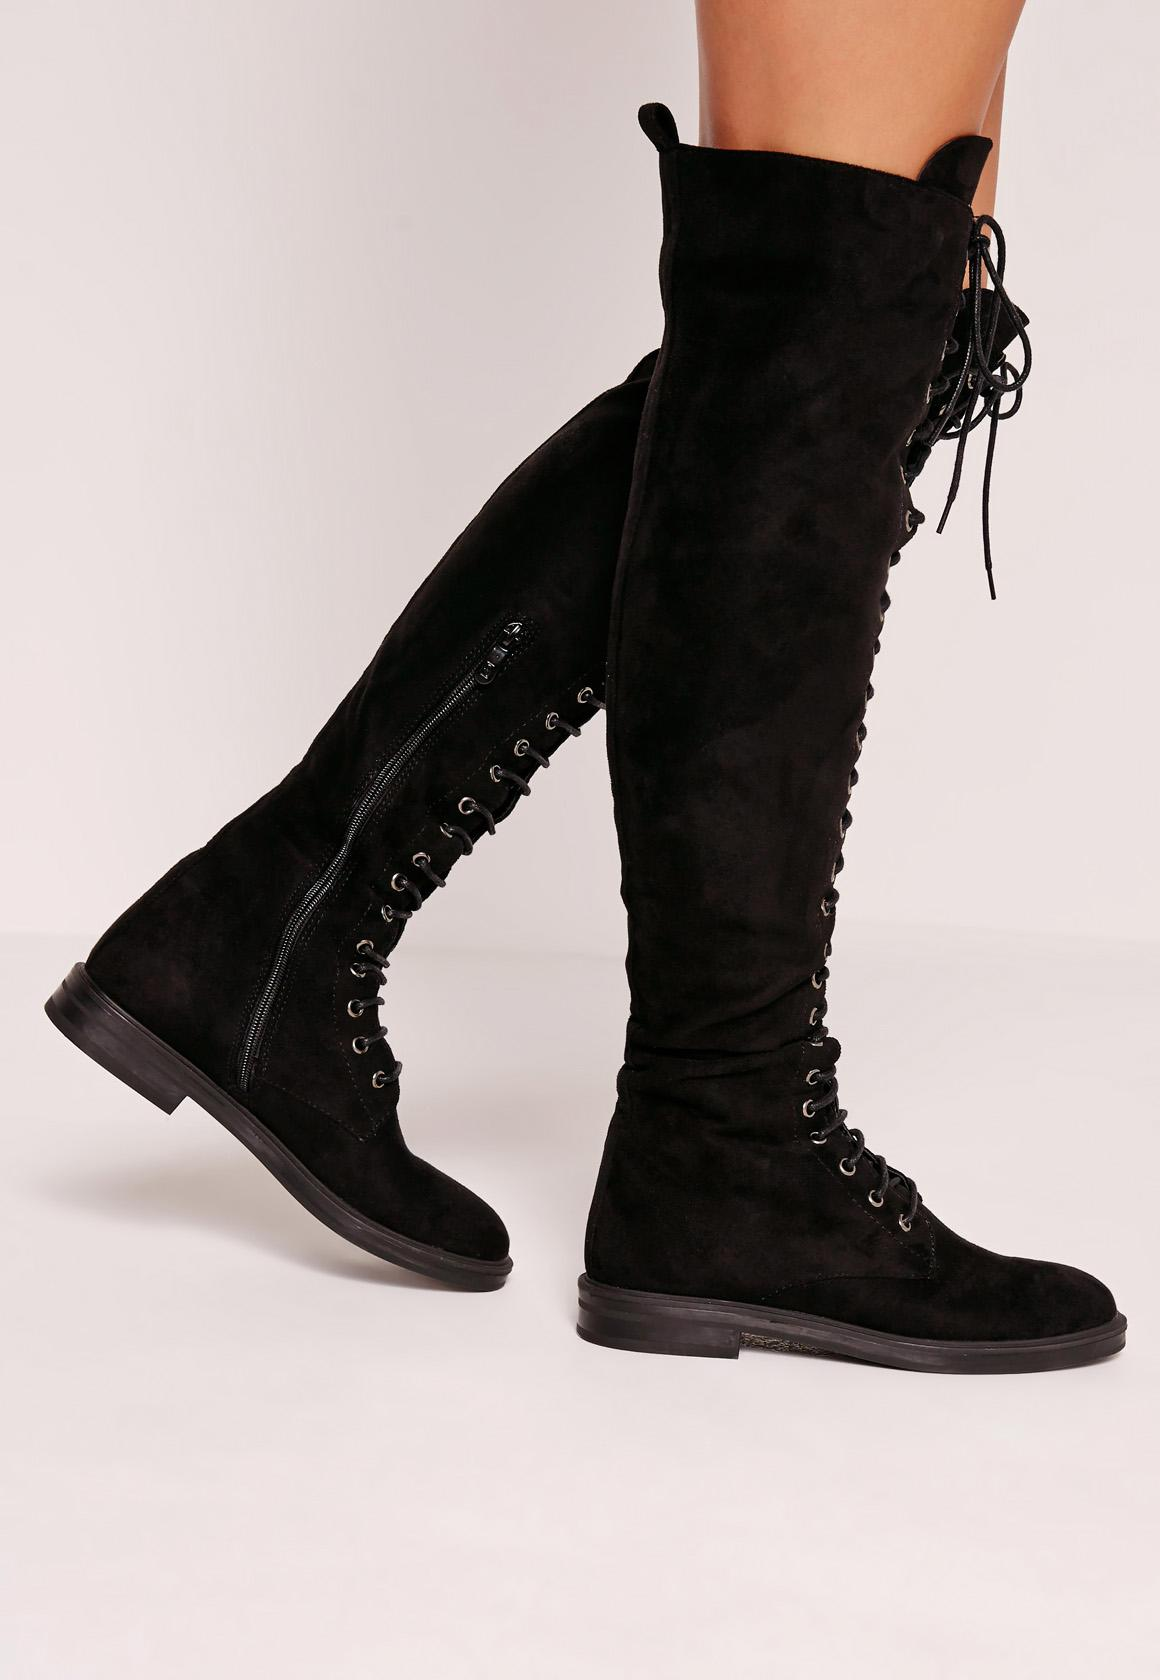 Flat Lace Up Over The Knee Boots Black - Missguided